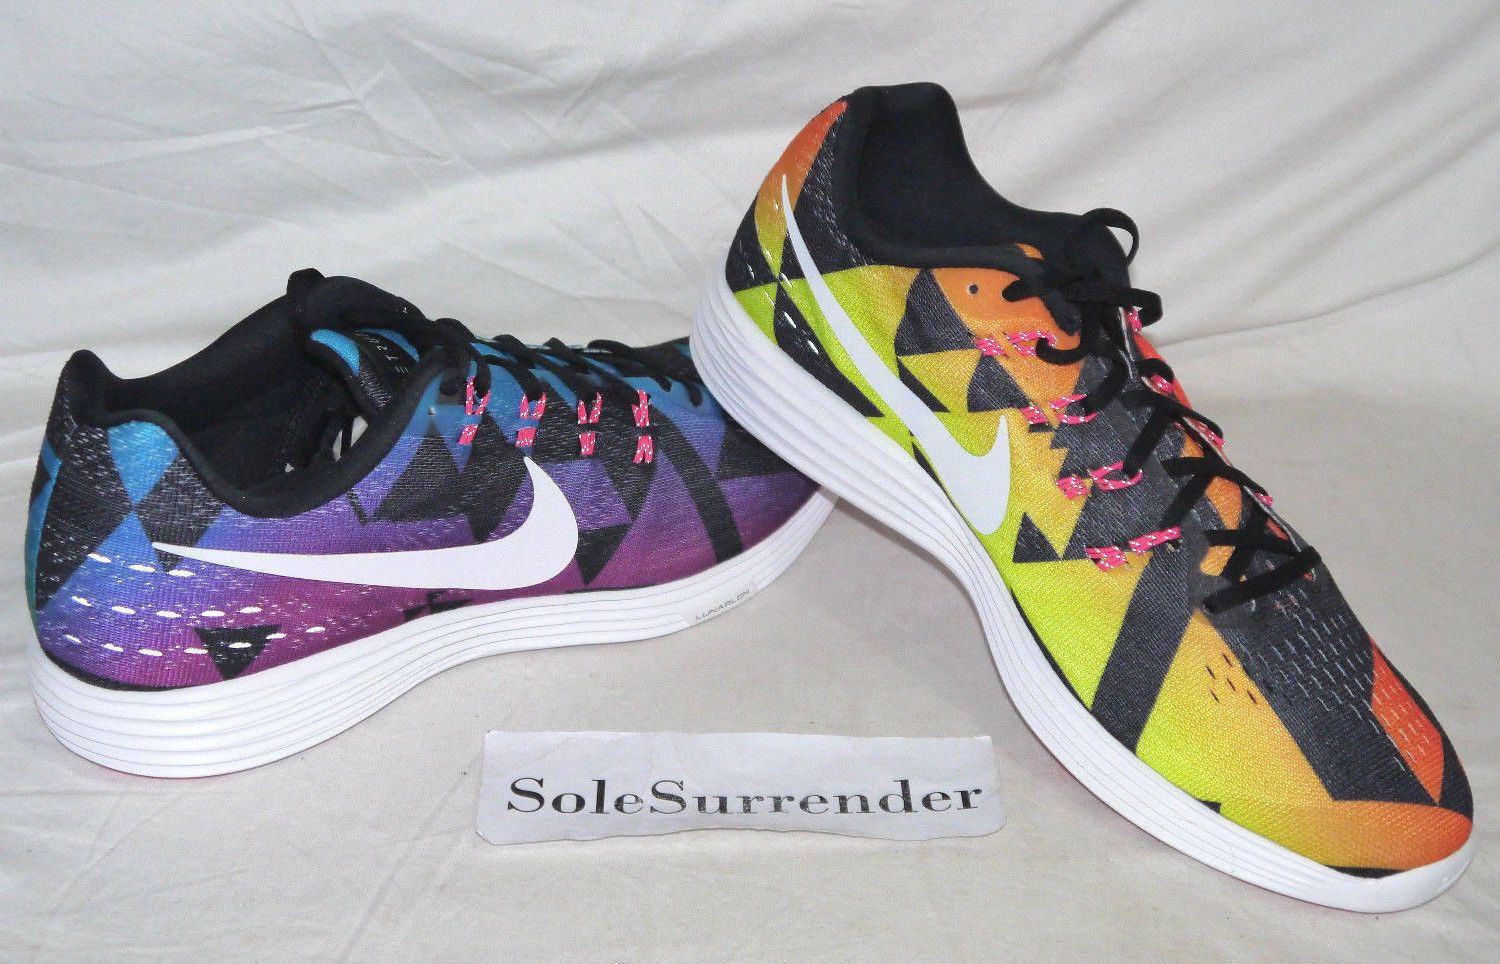 99586694eef7 Nike Lunartempo 2 Be True - CHOOSE SIZE - 848124-600 LGBT Gay Pride Rainbow